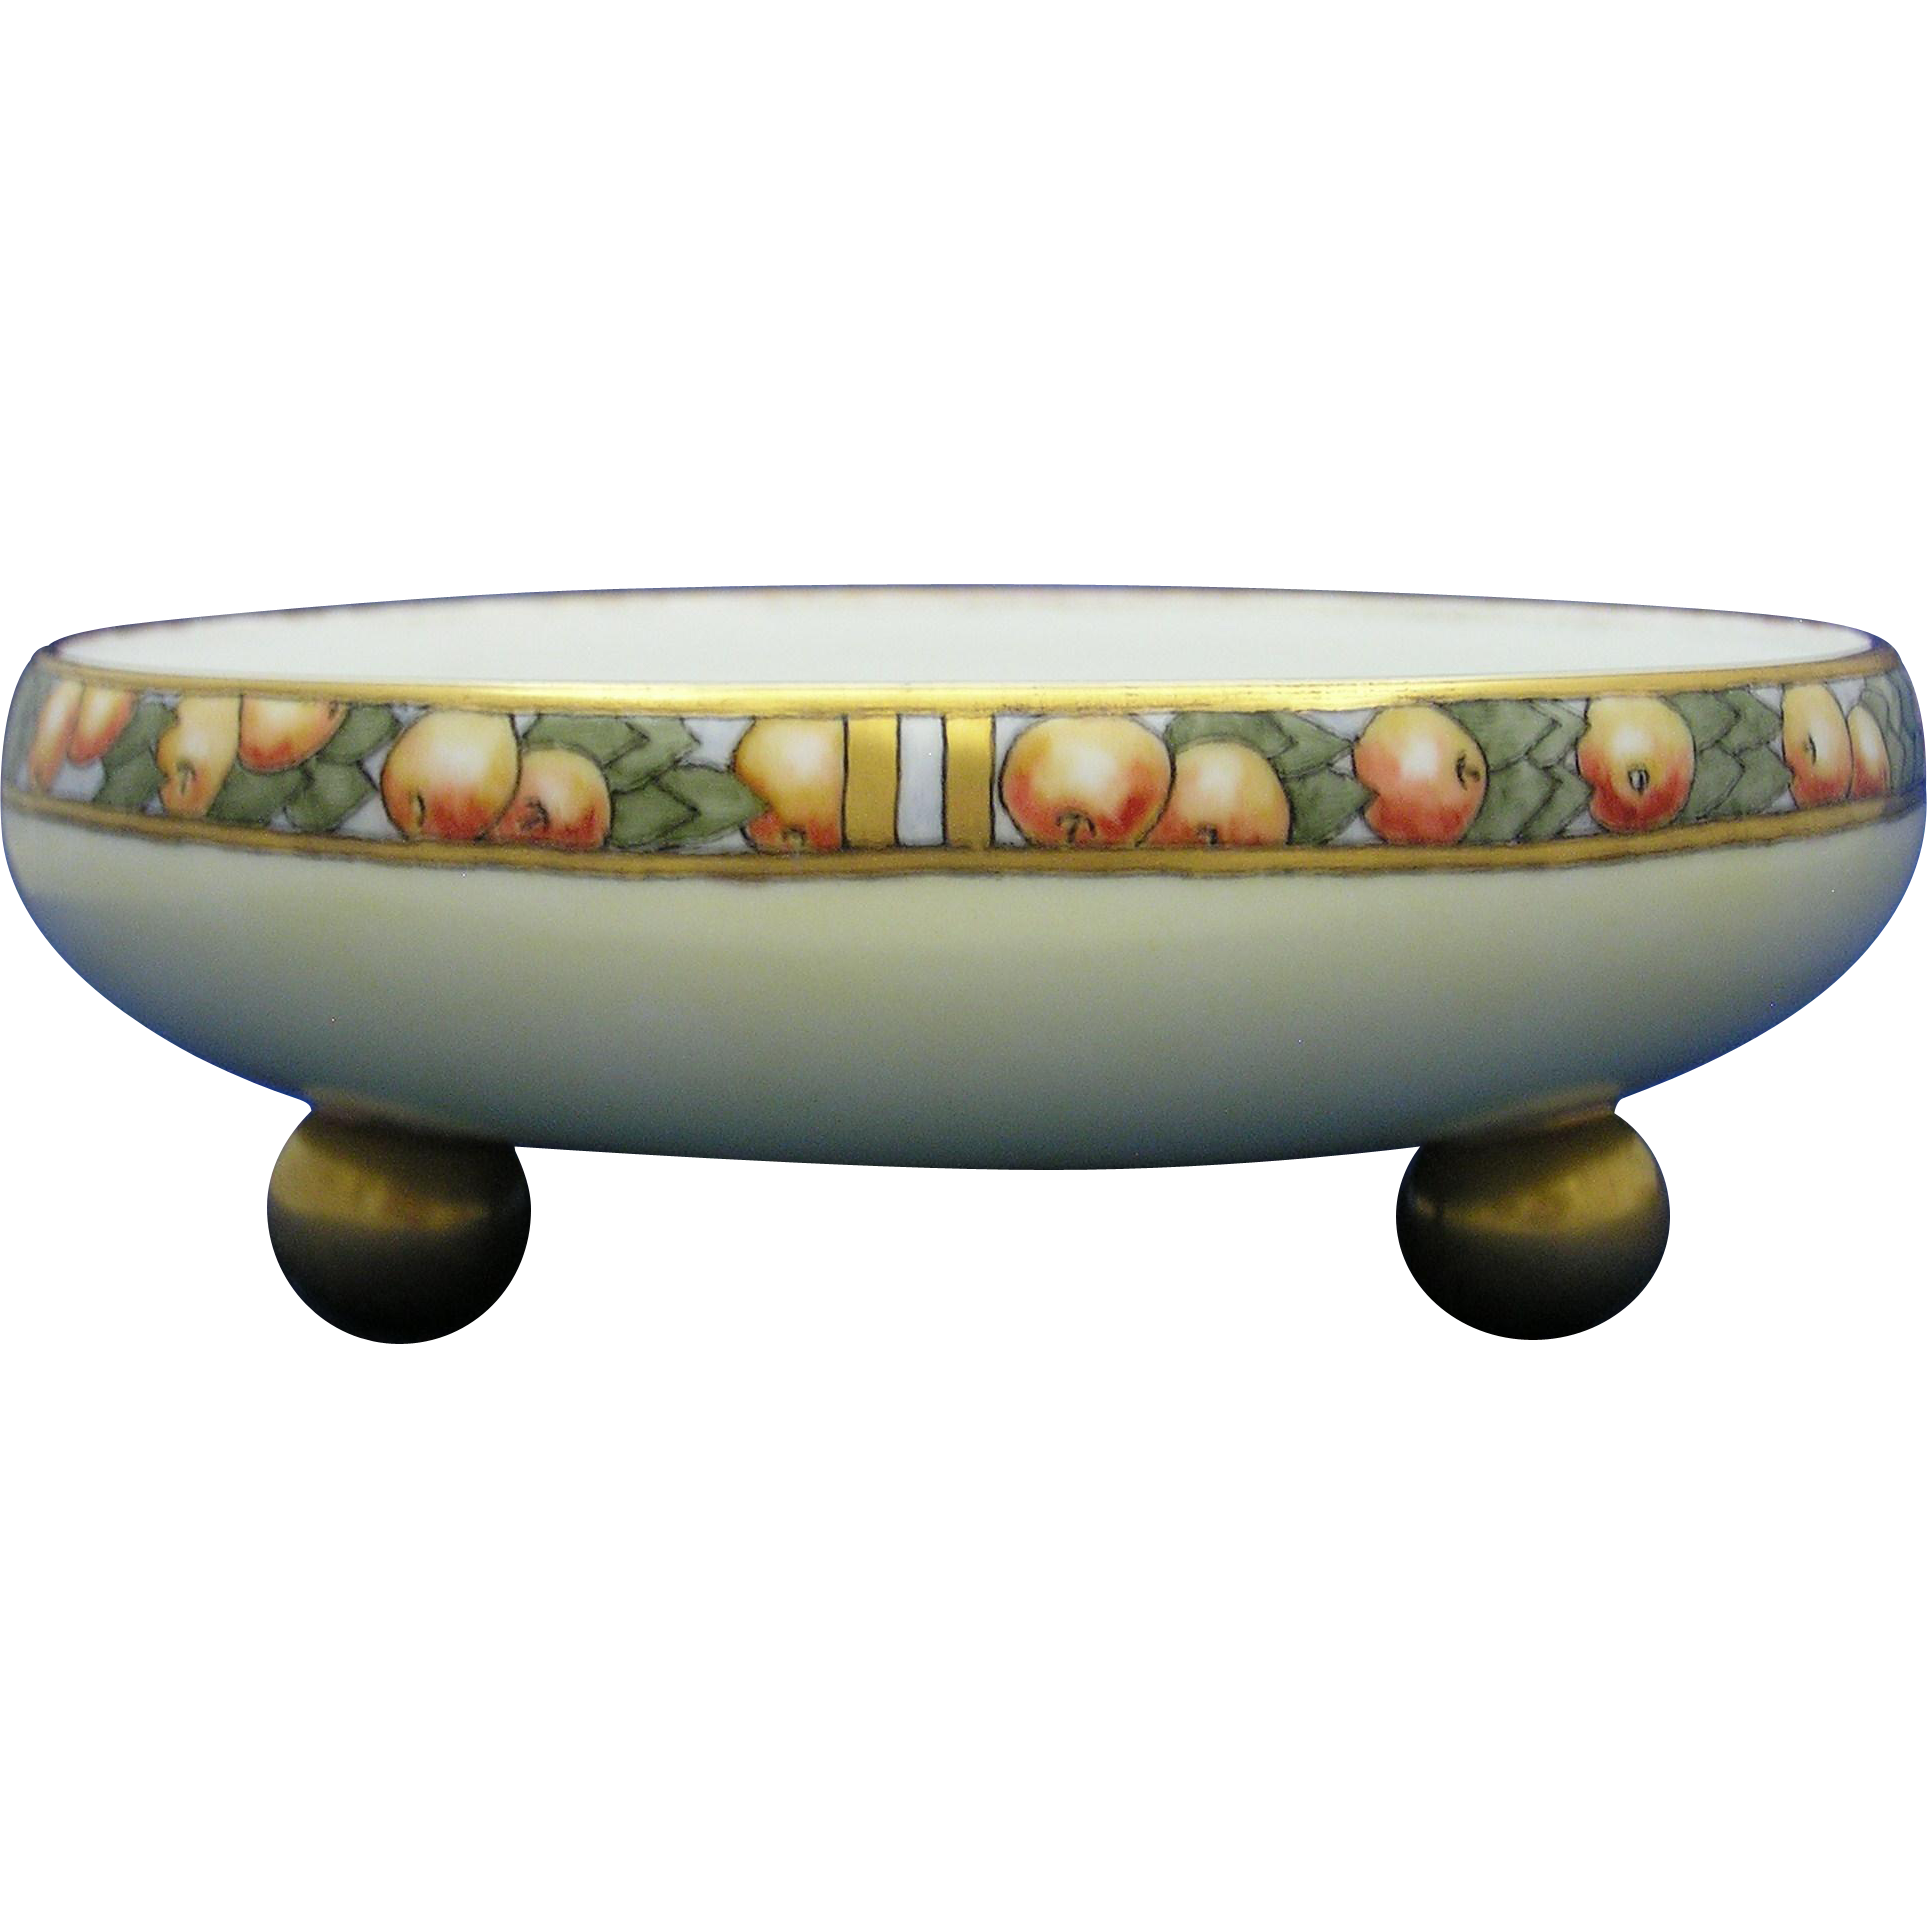 "Tressemann & Vogt (T&V) Limoges Citrus Fruit Motif Footed Bowl (Signed ""Huldah""/Dated 1917)"